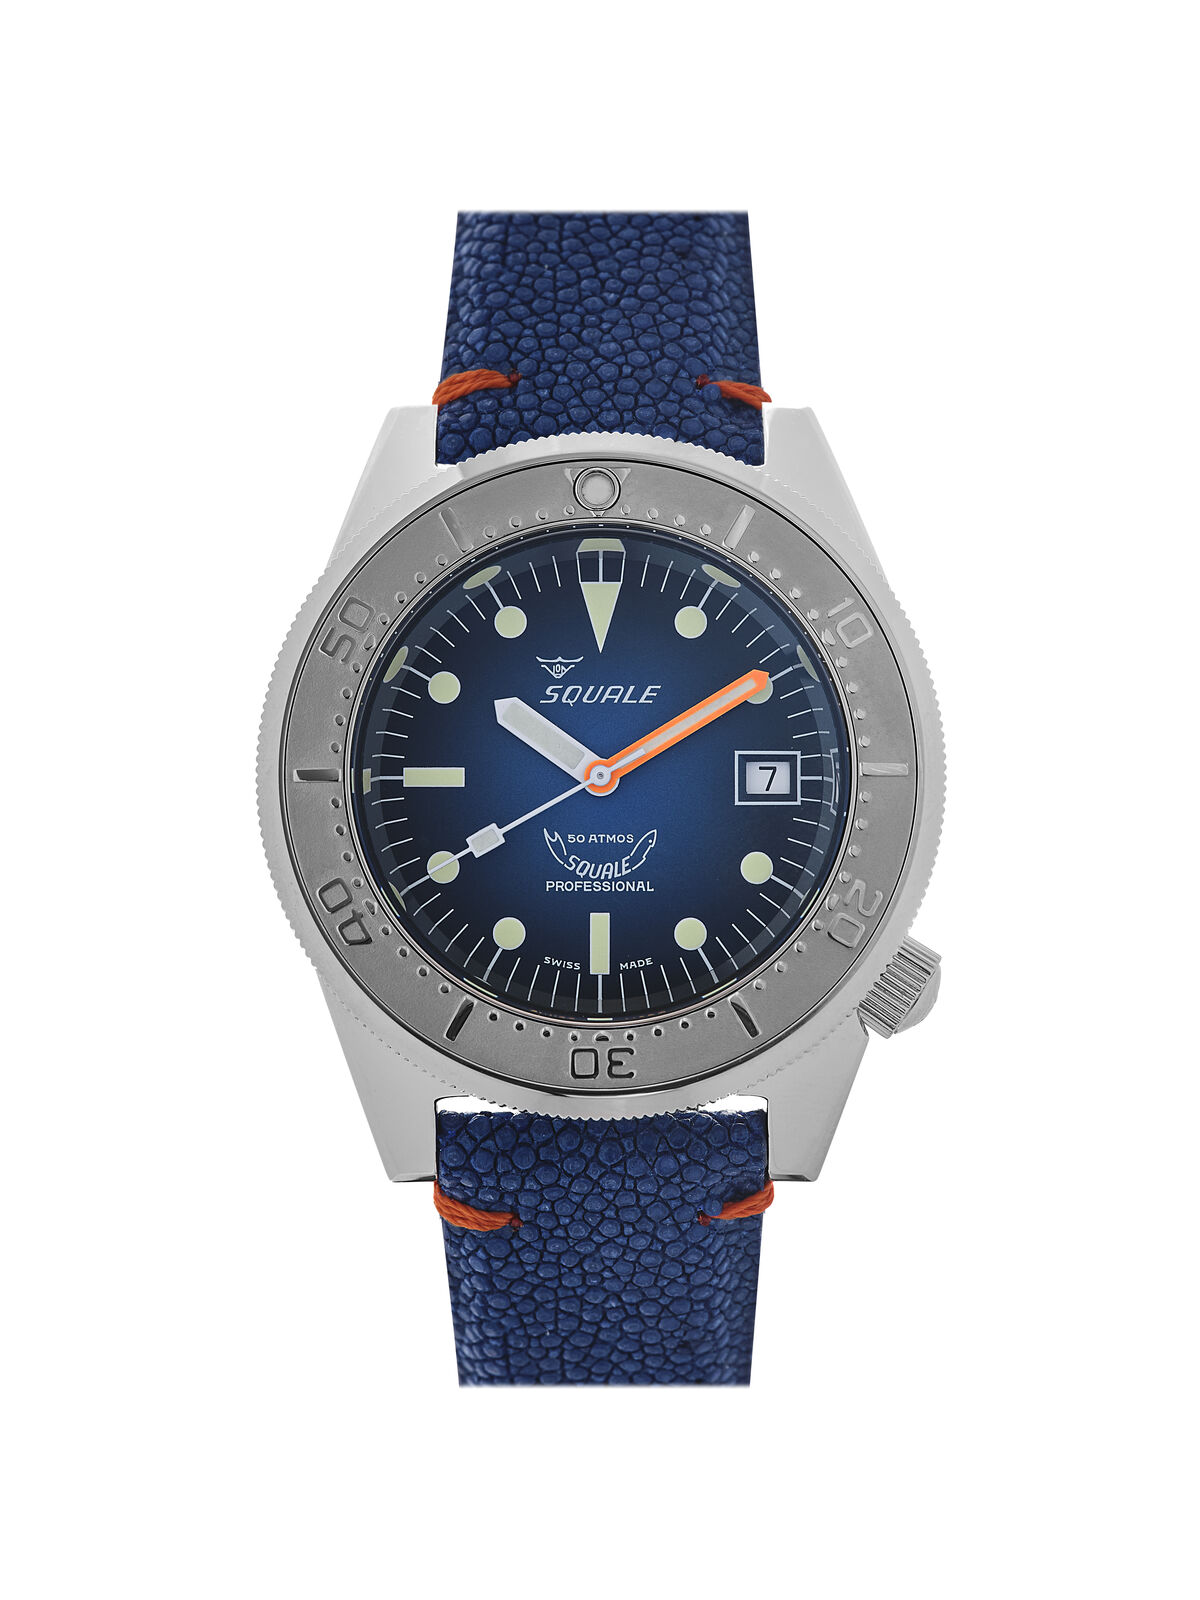 Squale 50 atmos 1521 Blu Ray Dive Watch